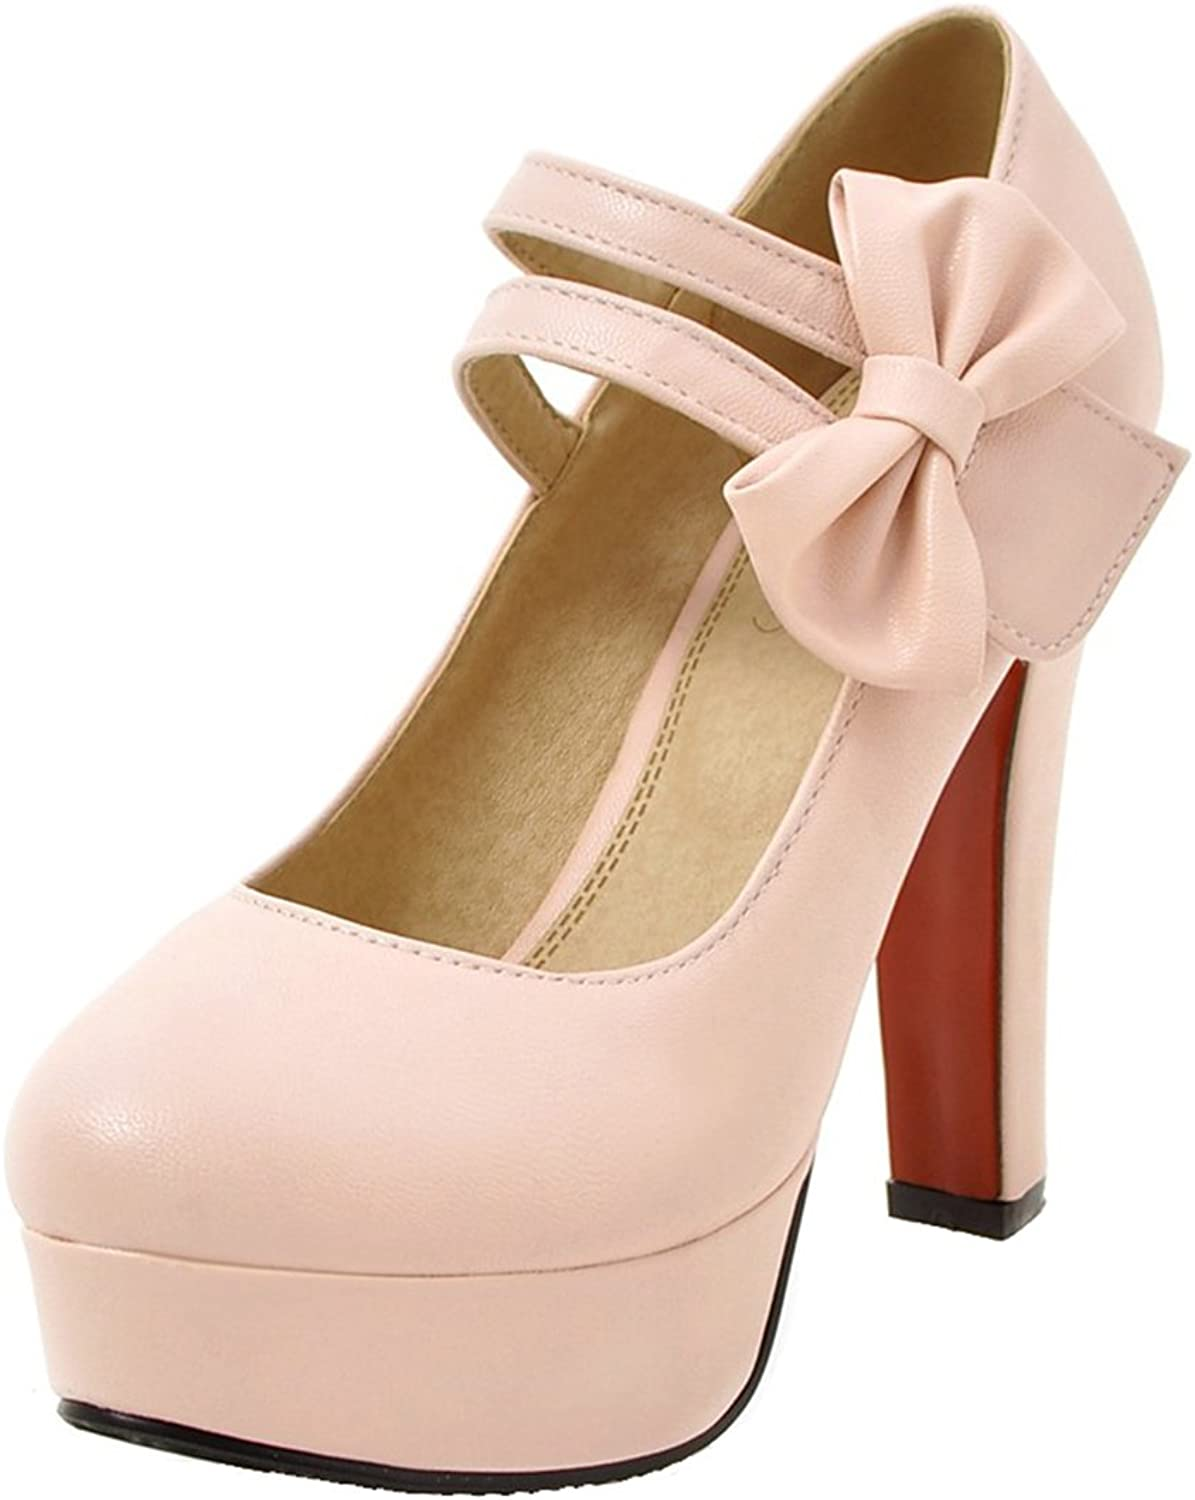 AIYOUMEI Women's Mary Jane Block Heel Platform Pumps shoes with Bows